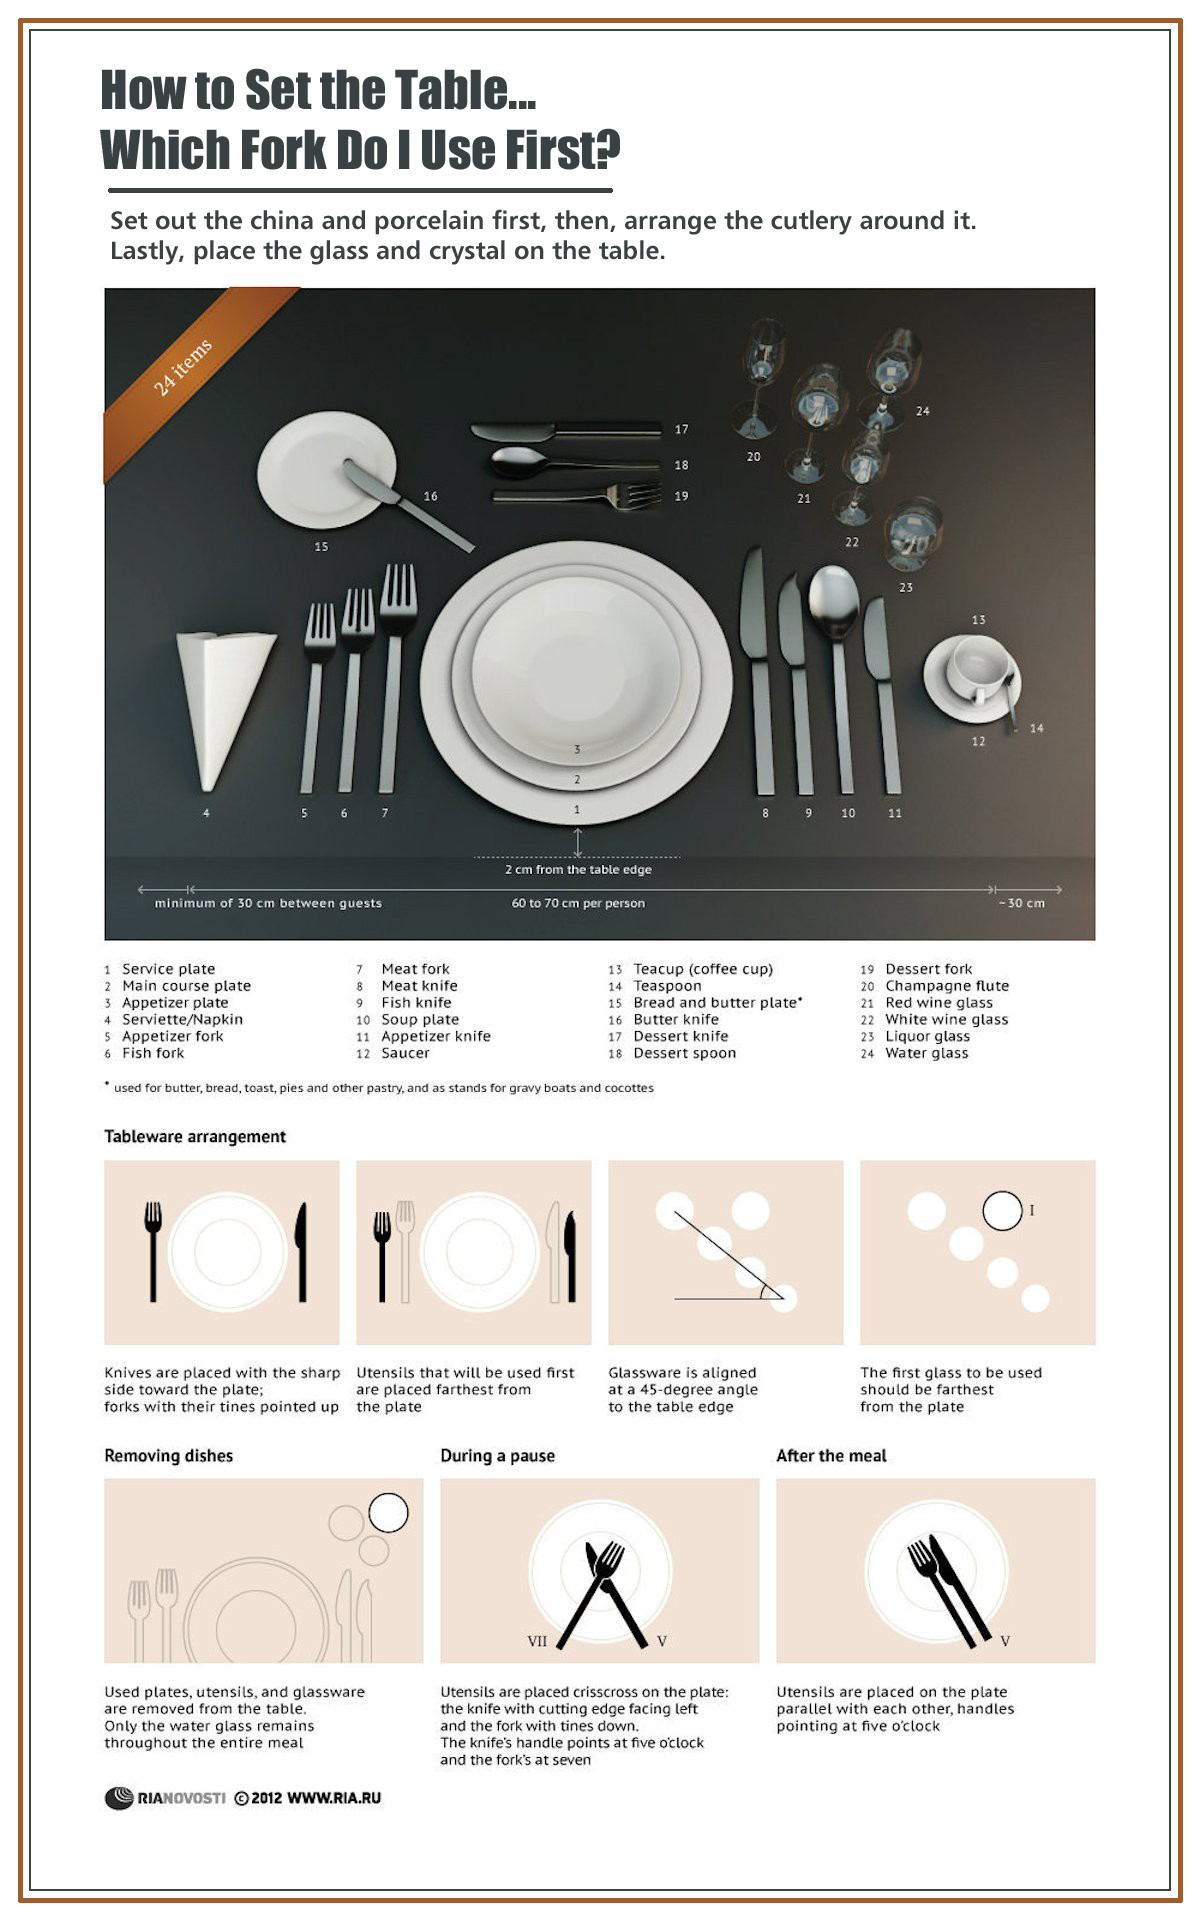 00 RIA-Novosti Infographics. How to Set the Table... Which Fork Do I Use First. 2012